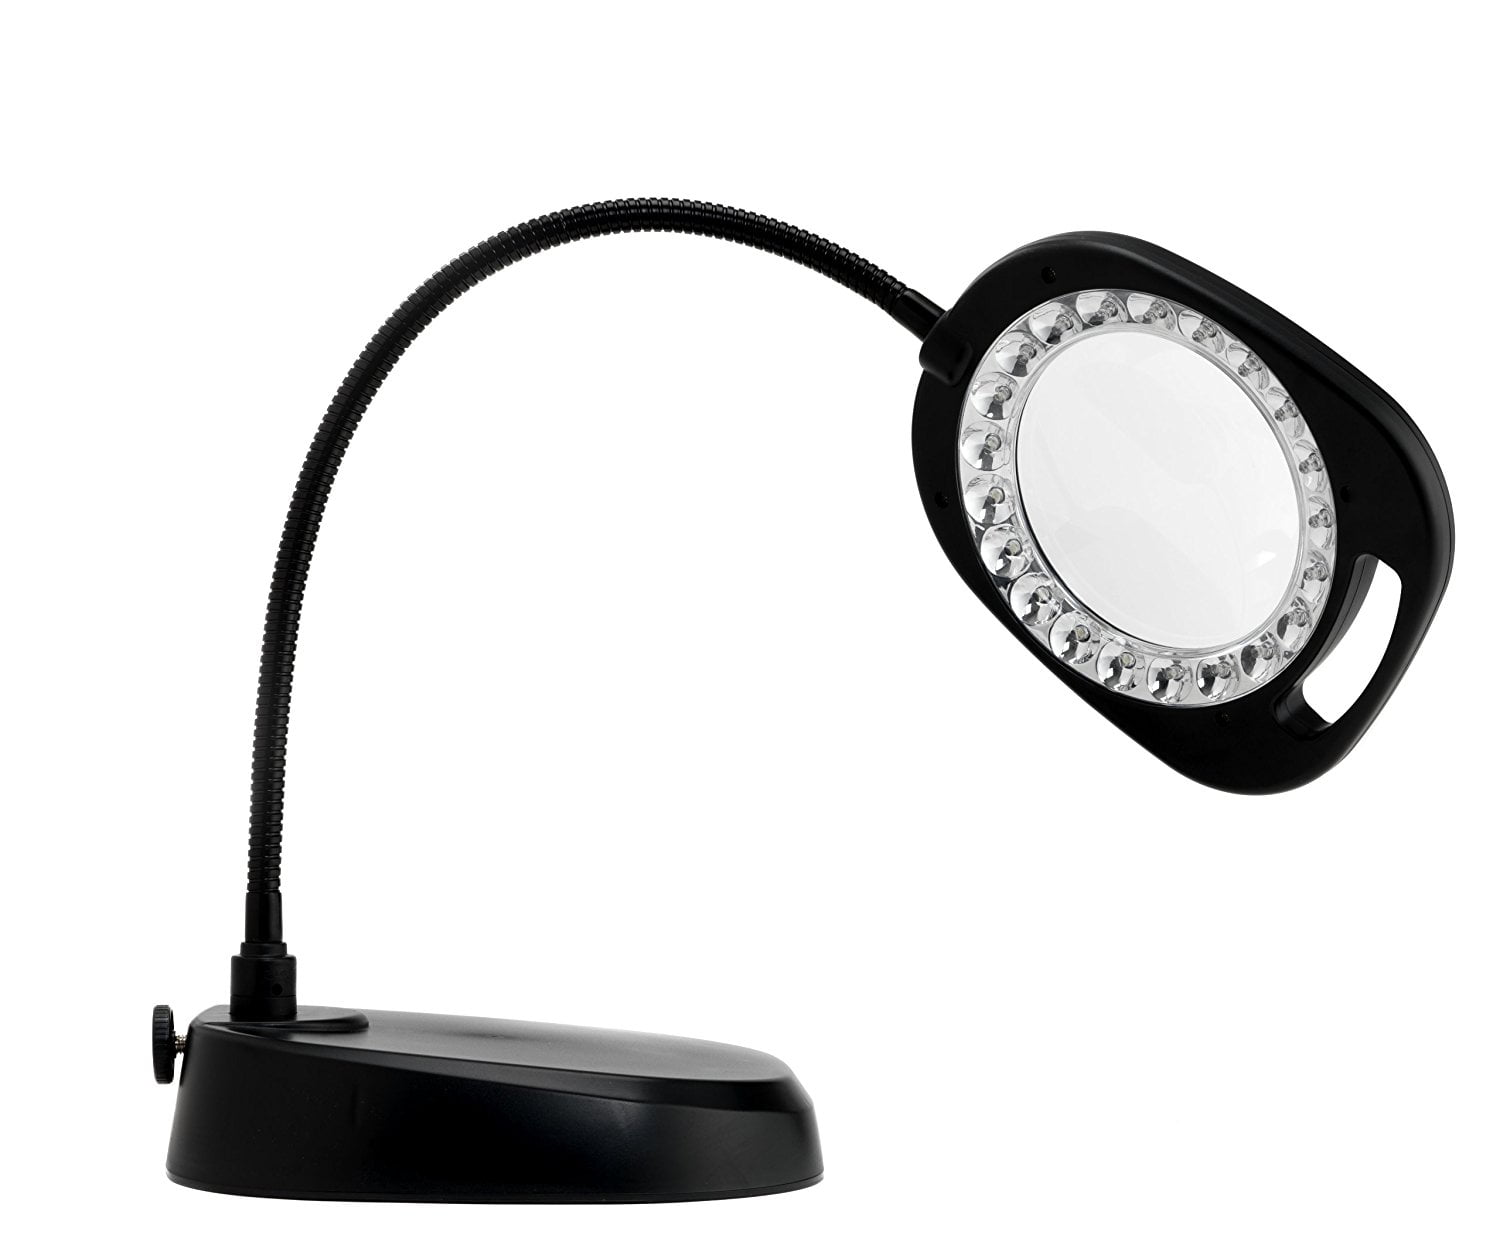 Naturalight 5 Inch Led Floor Or Table Mag Light By